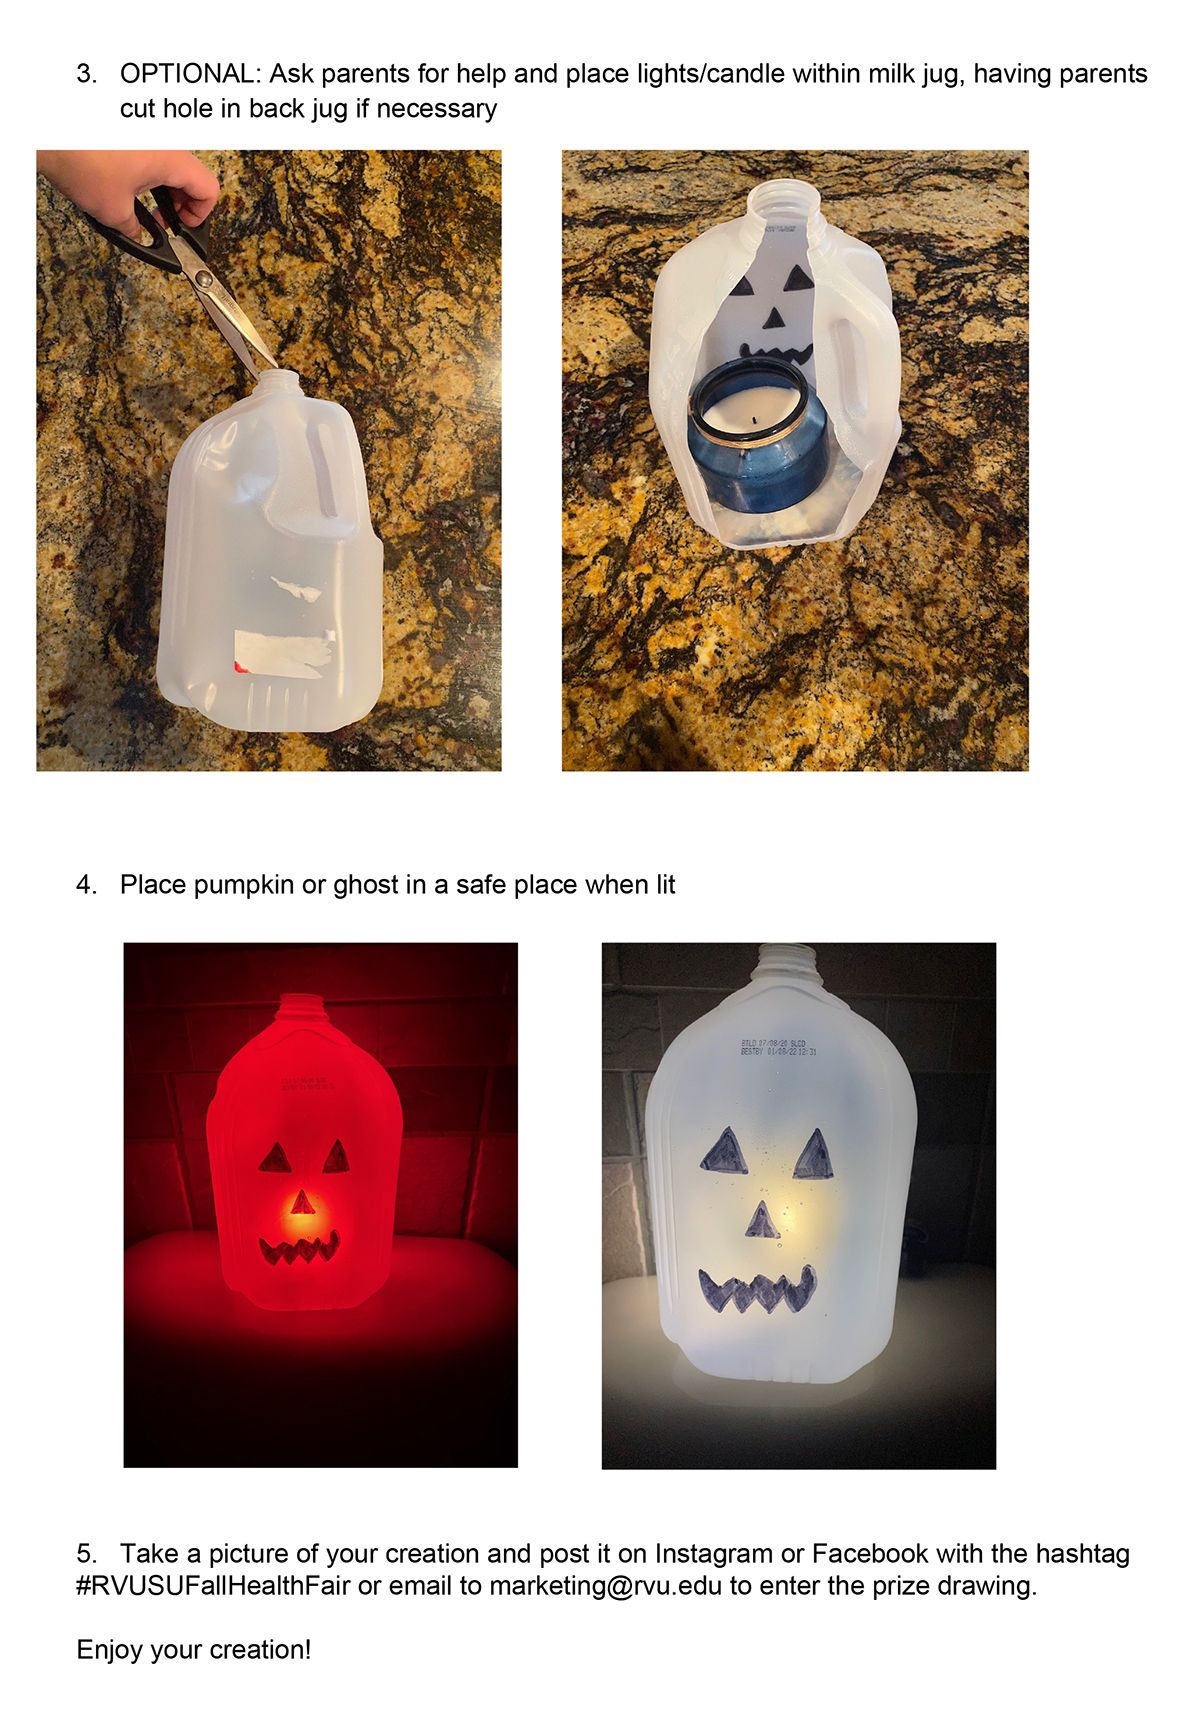 Milk Jug Pumpkins and Ghosts-2